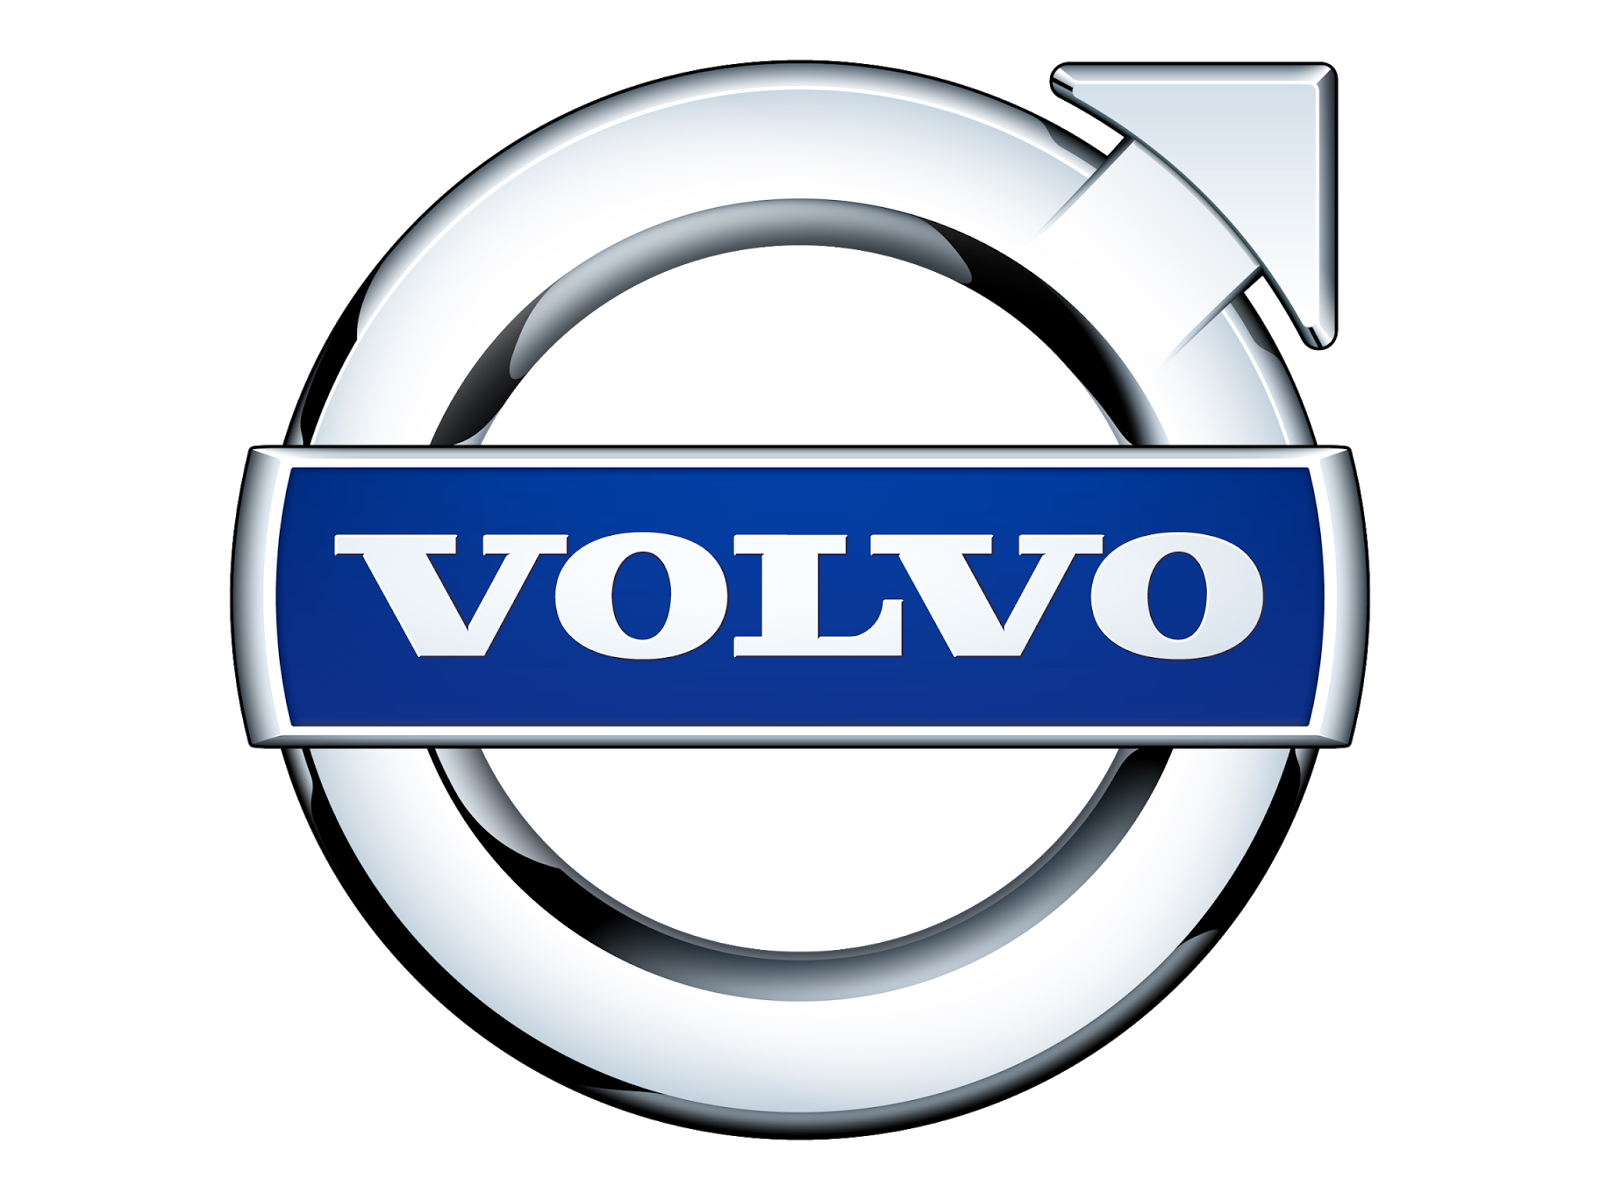 Volvo job openings 2016 for freshers experienced